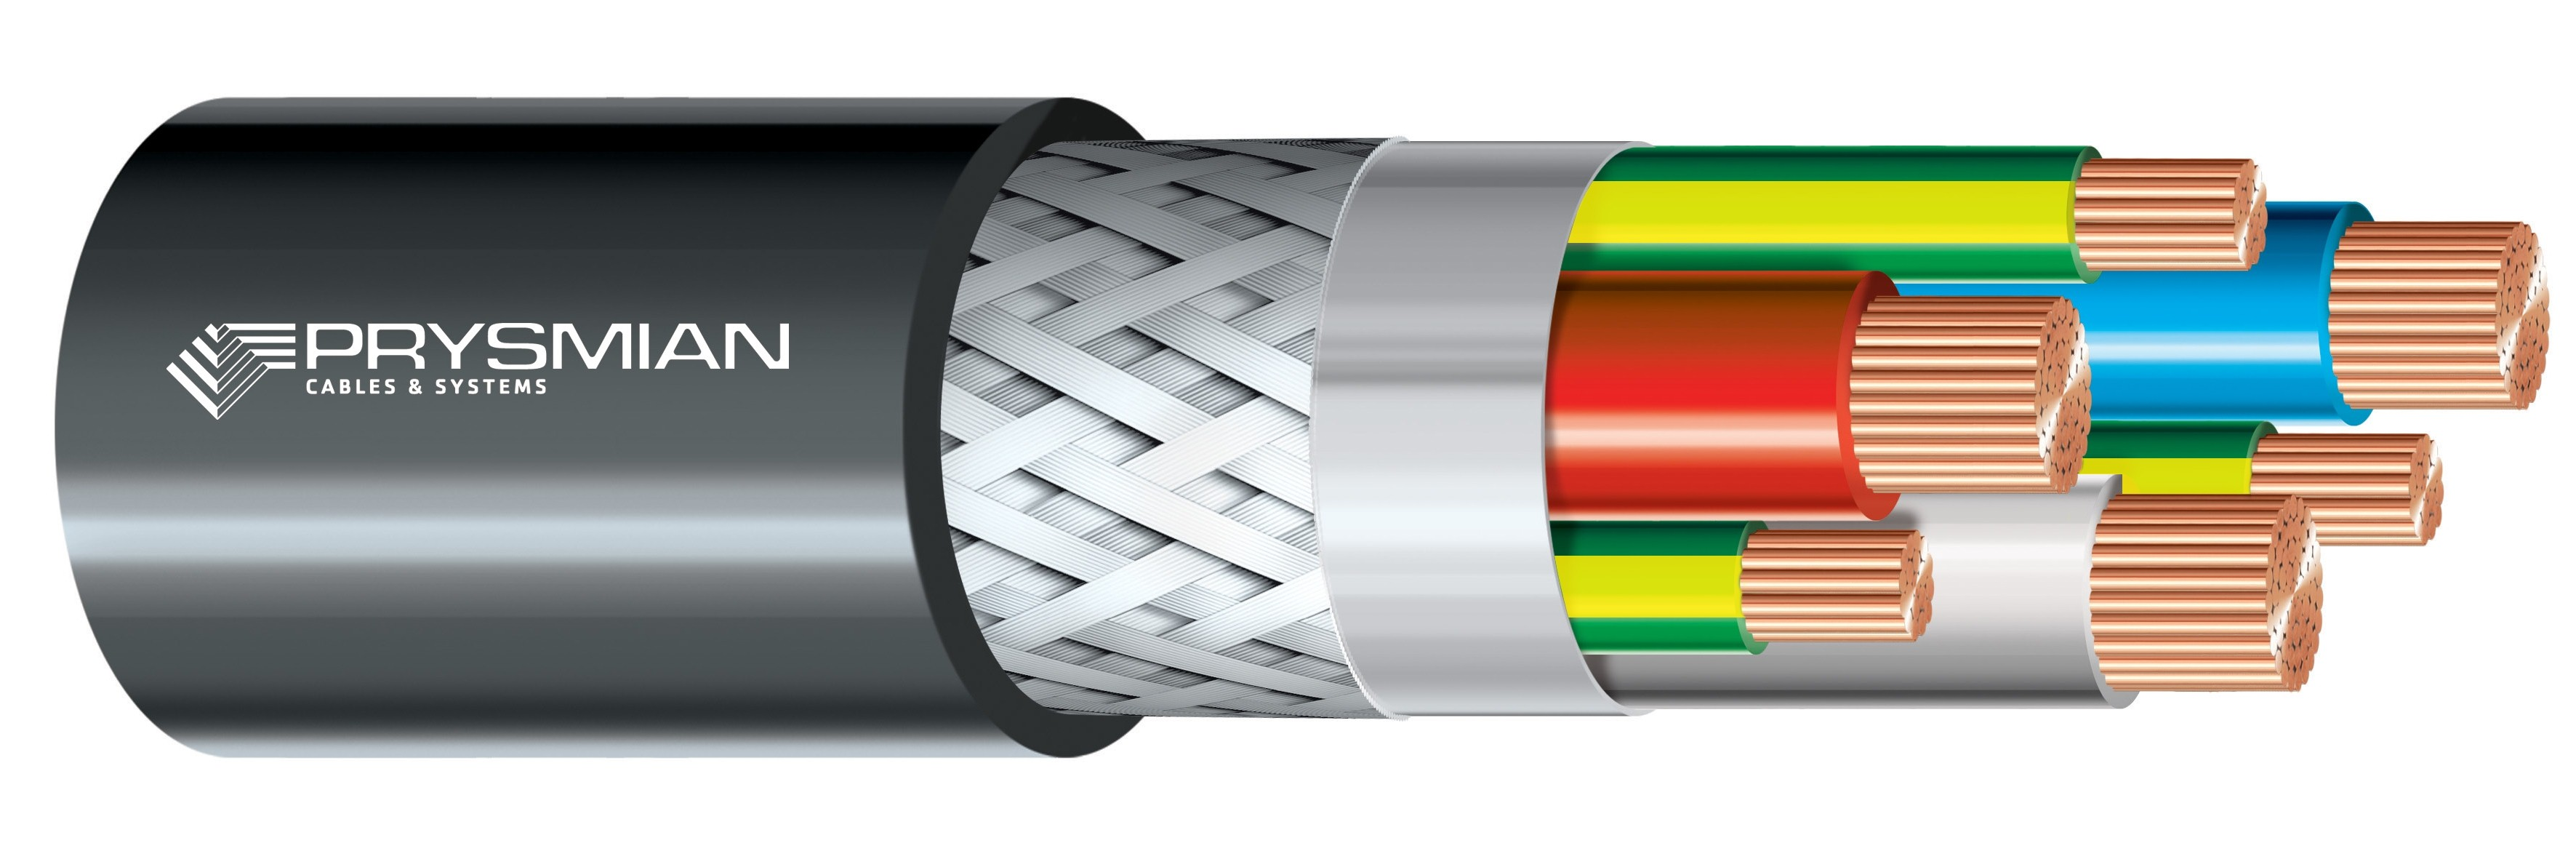 Prysmian Australia Pty Ltd » Cables